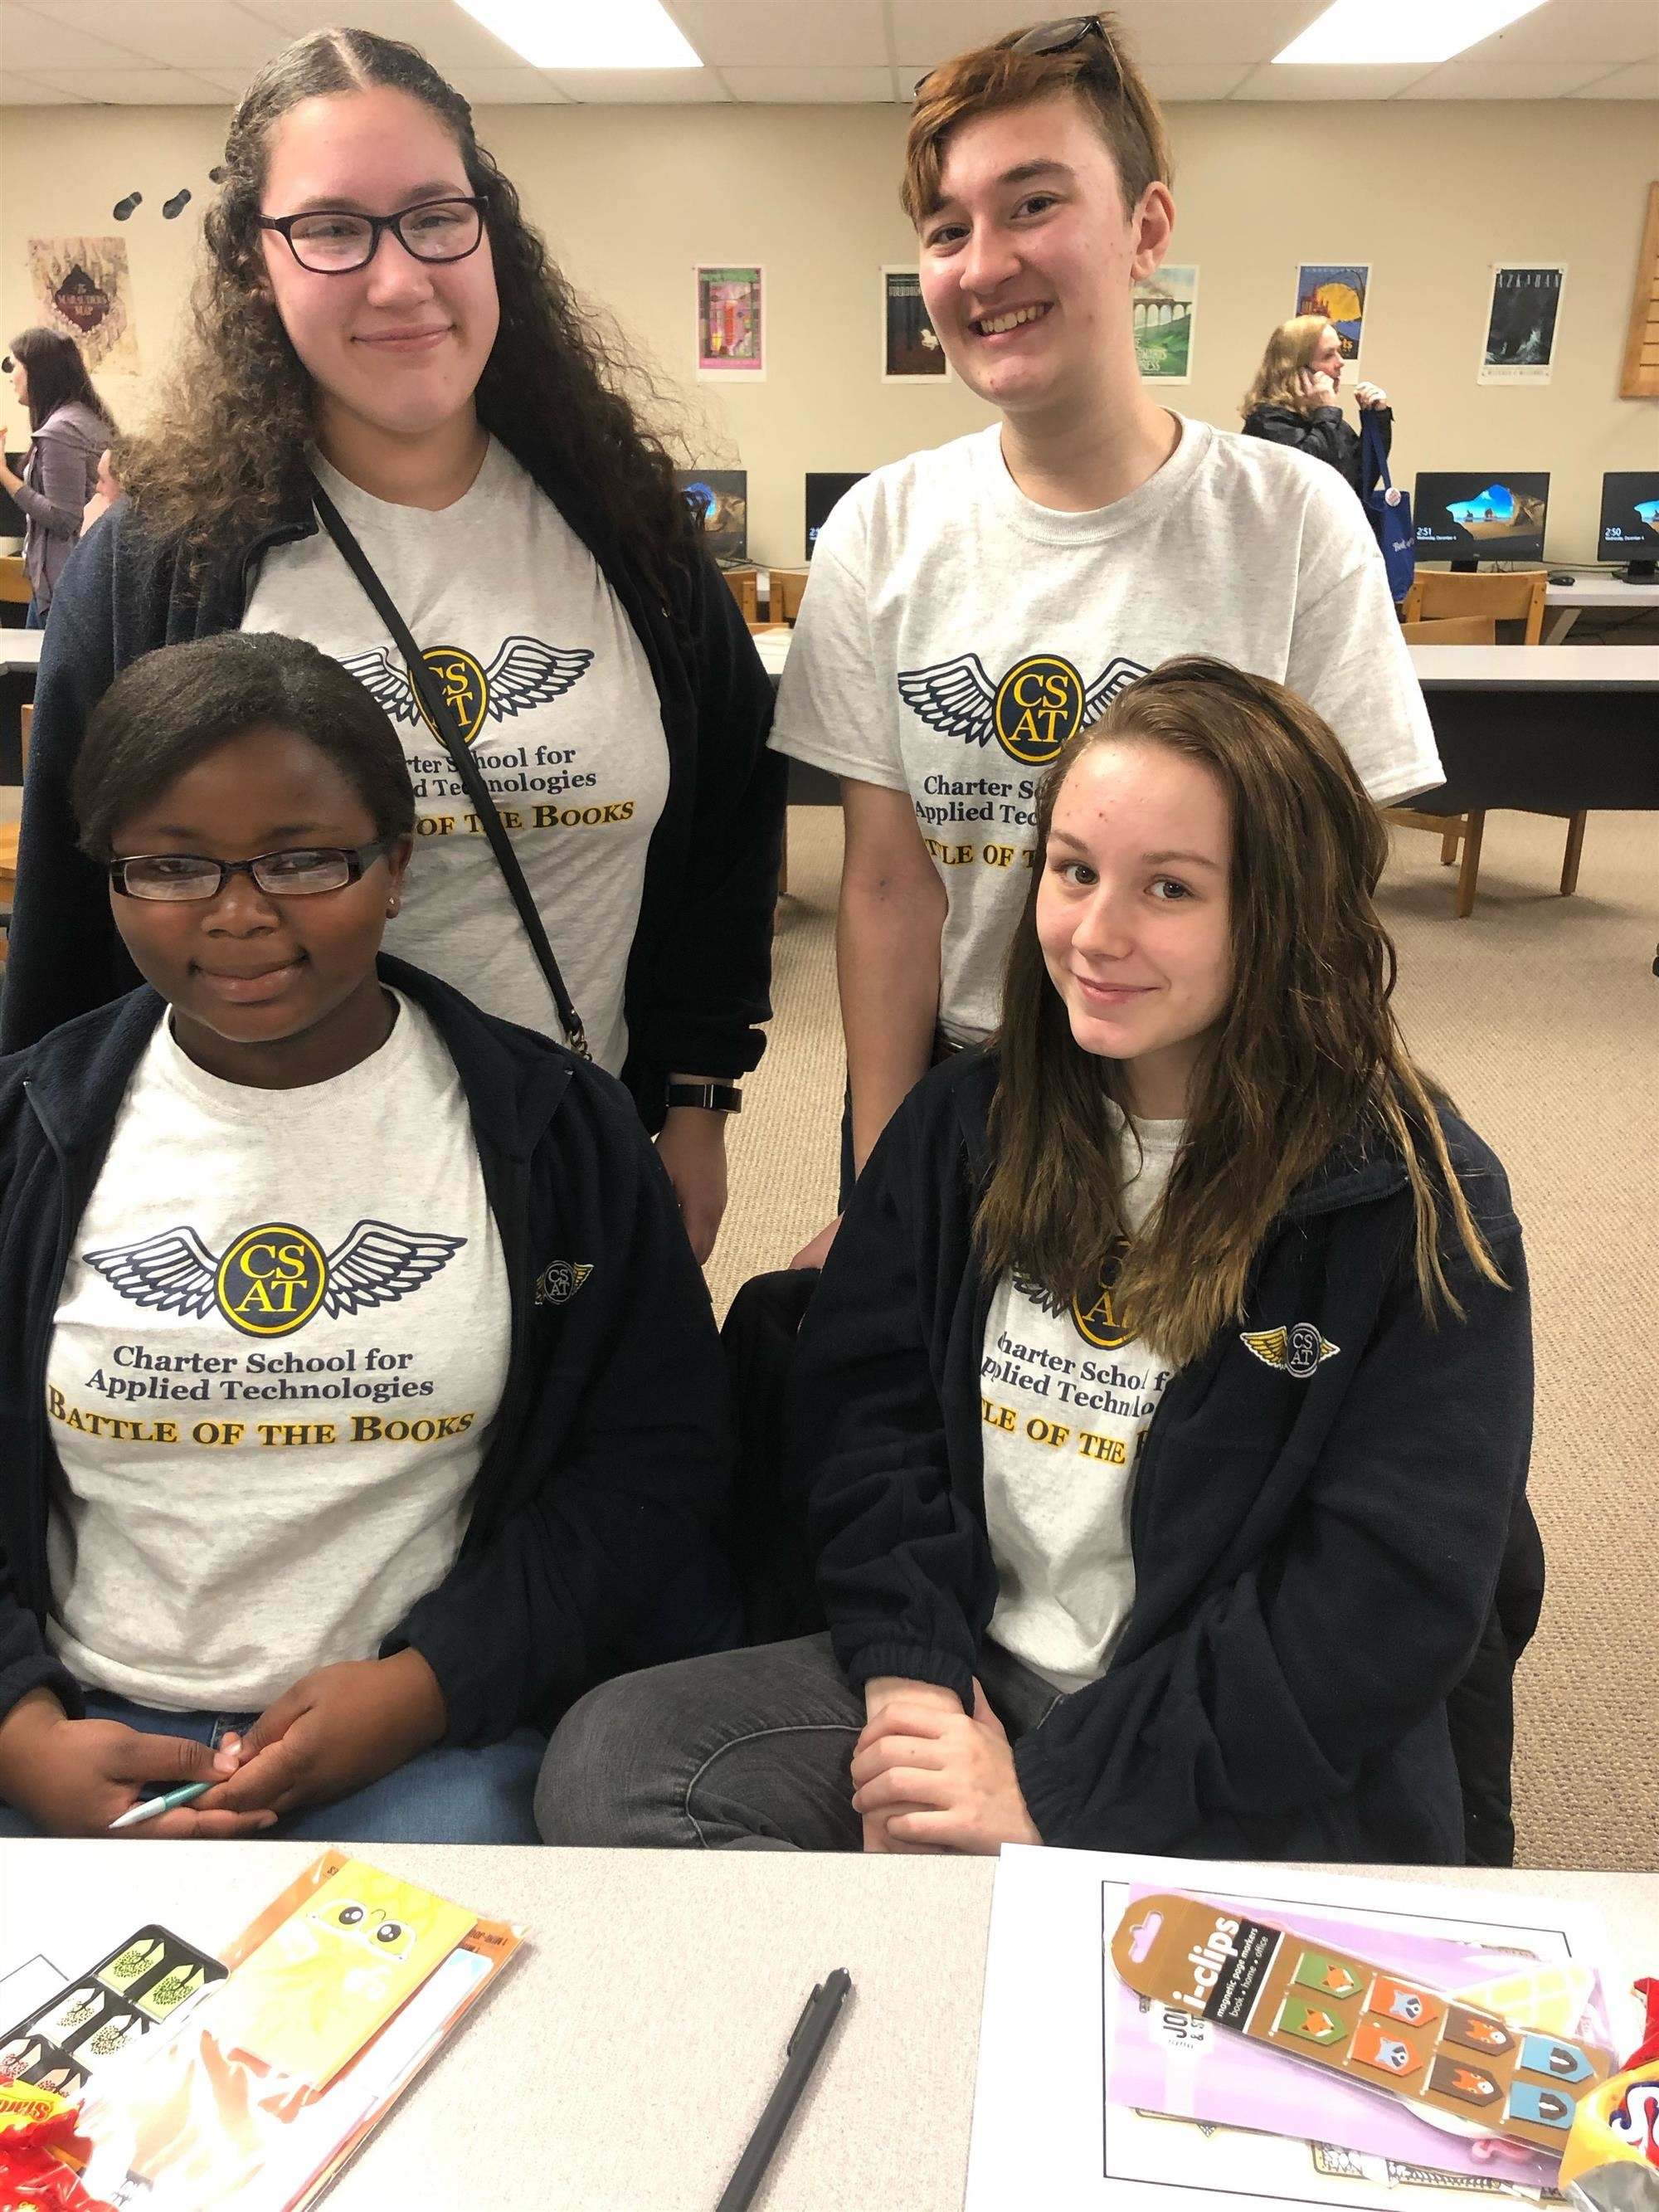 CSAT Sweeps Battle of the Books Second Year in a Row